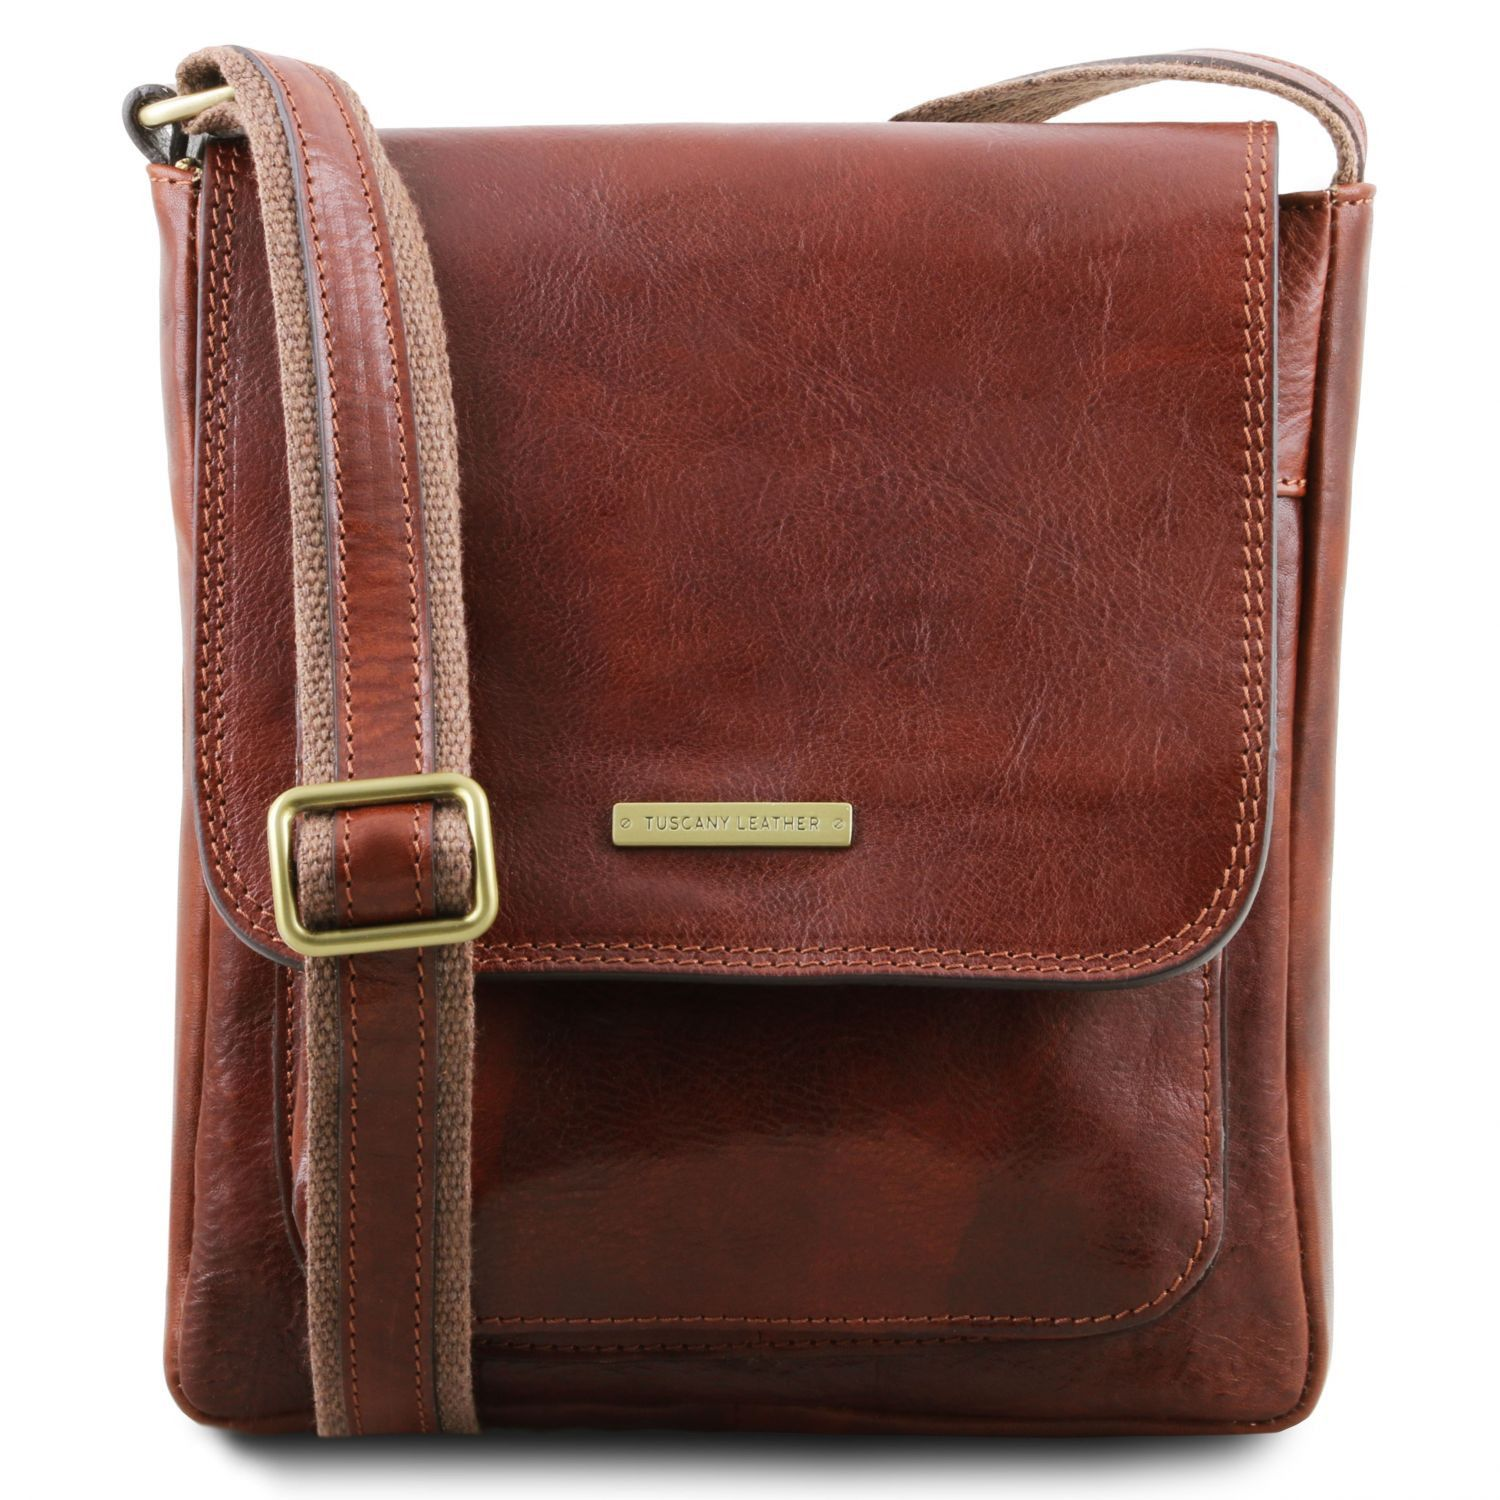 Jimmy - Leather crossbody bag for men with front pocket (TL141407) - Leather bags for men | DILUSSOBAGS